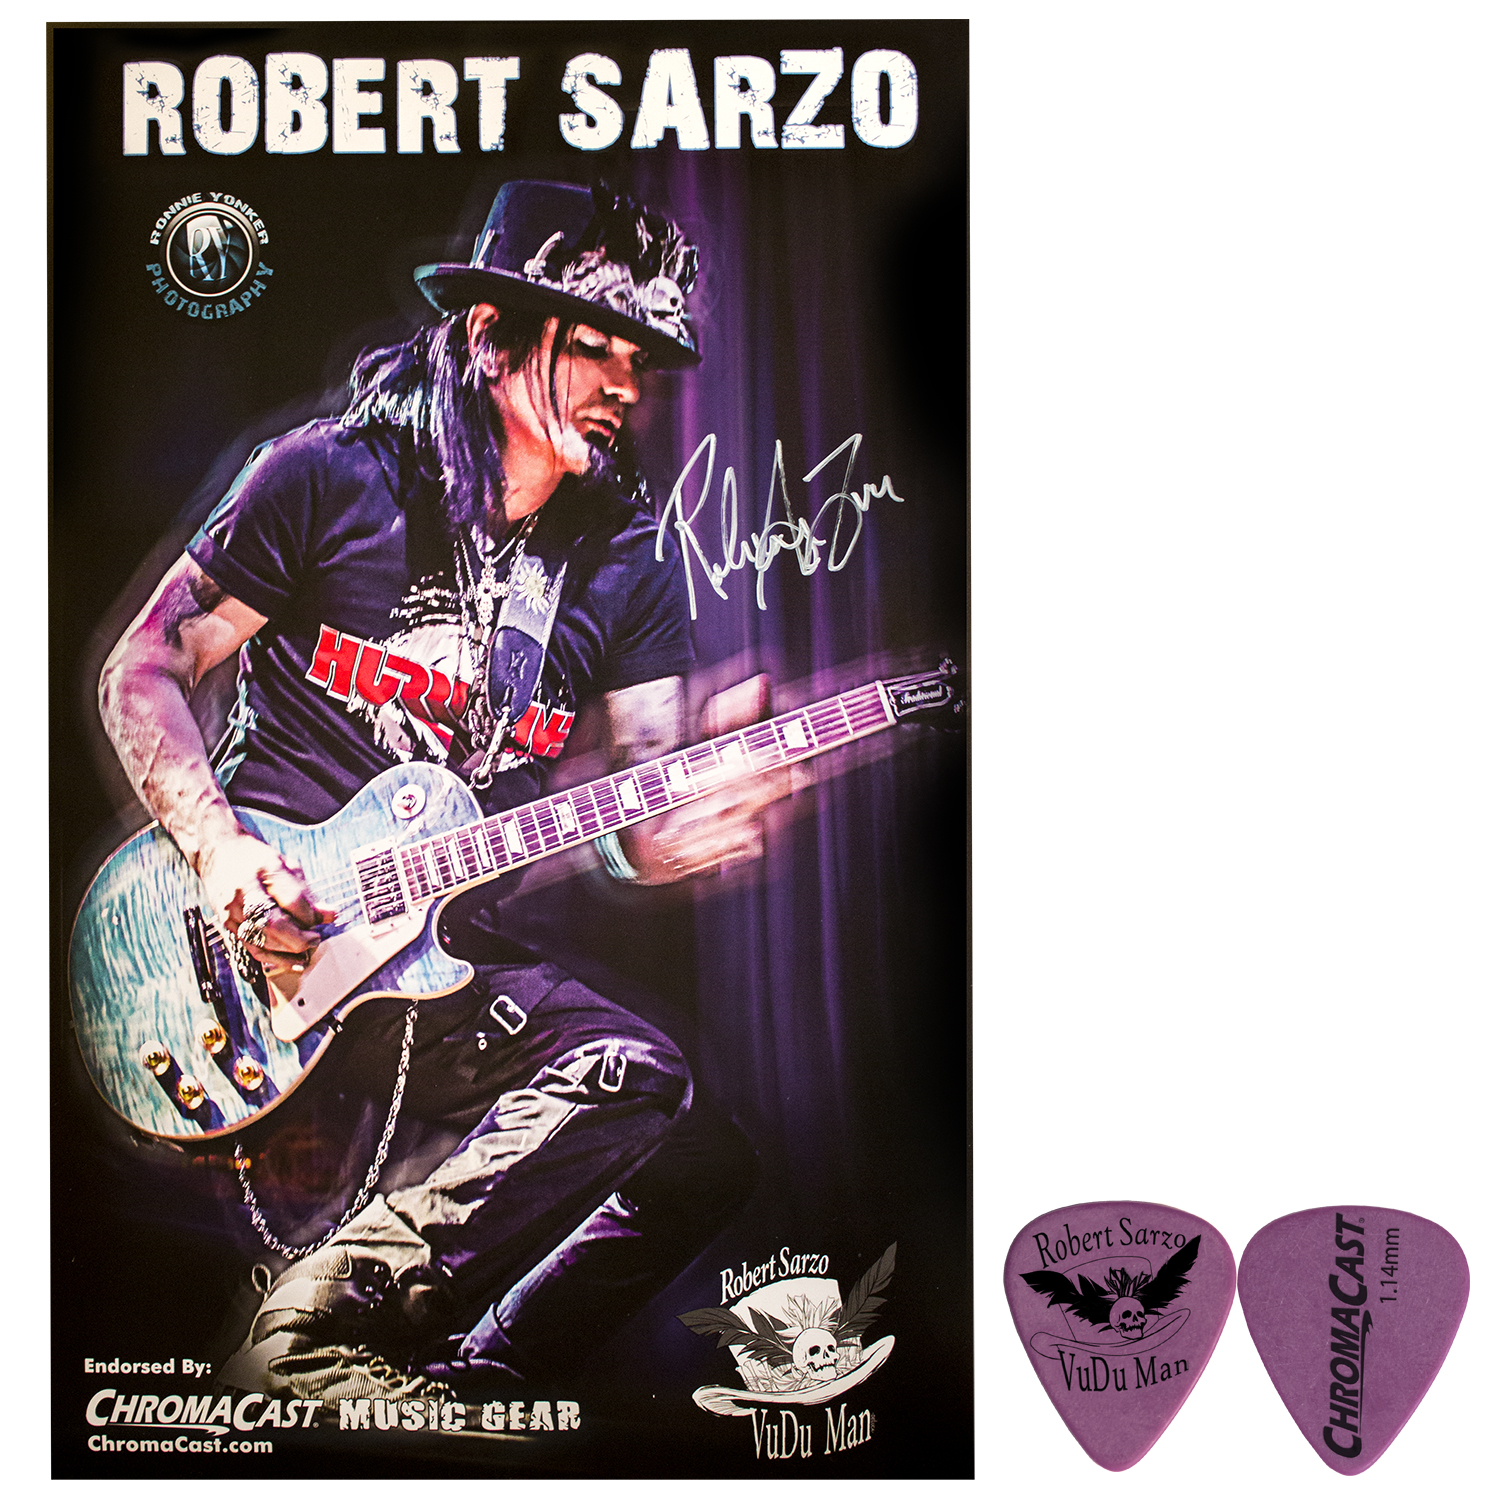 Robert Sarzo Signed Poster Pack